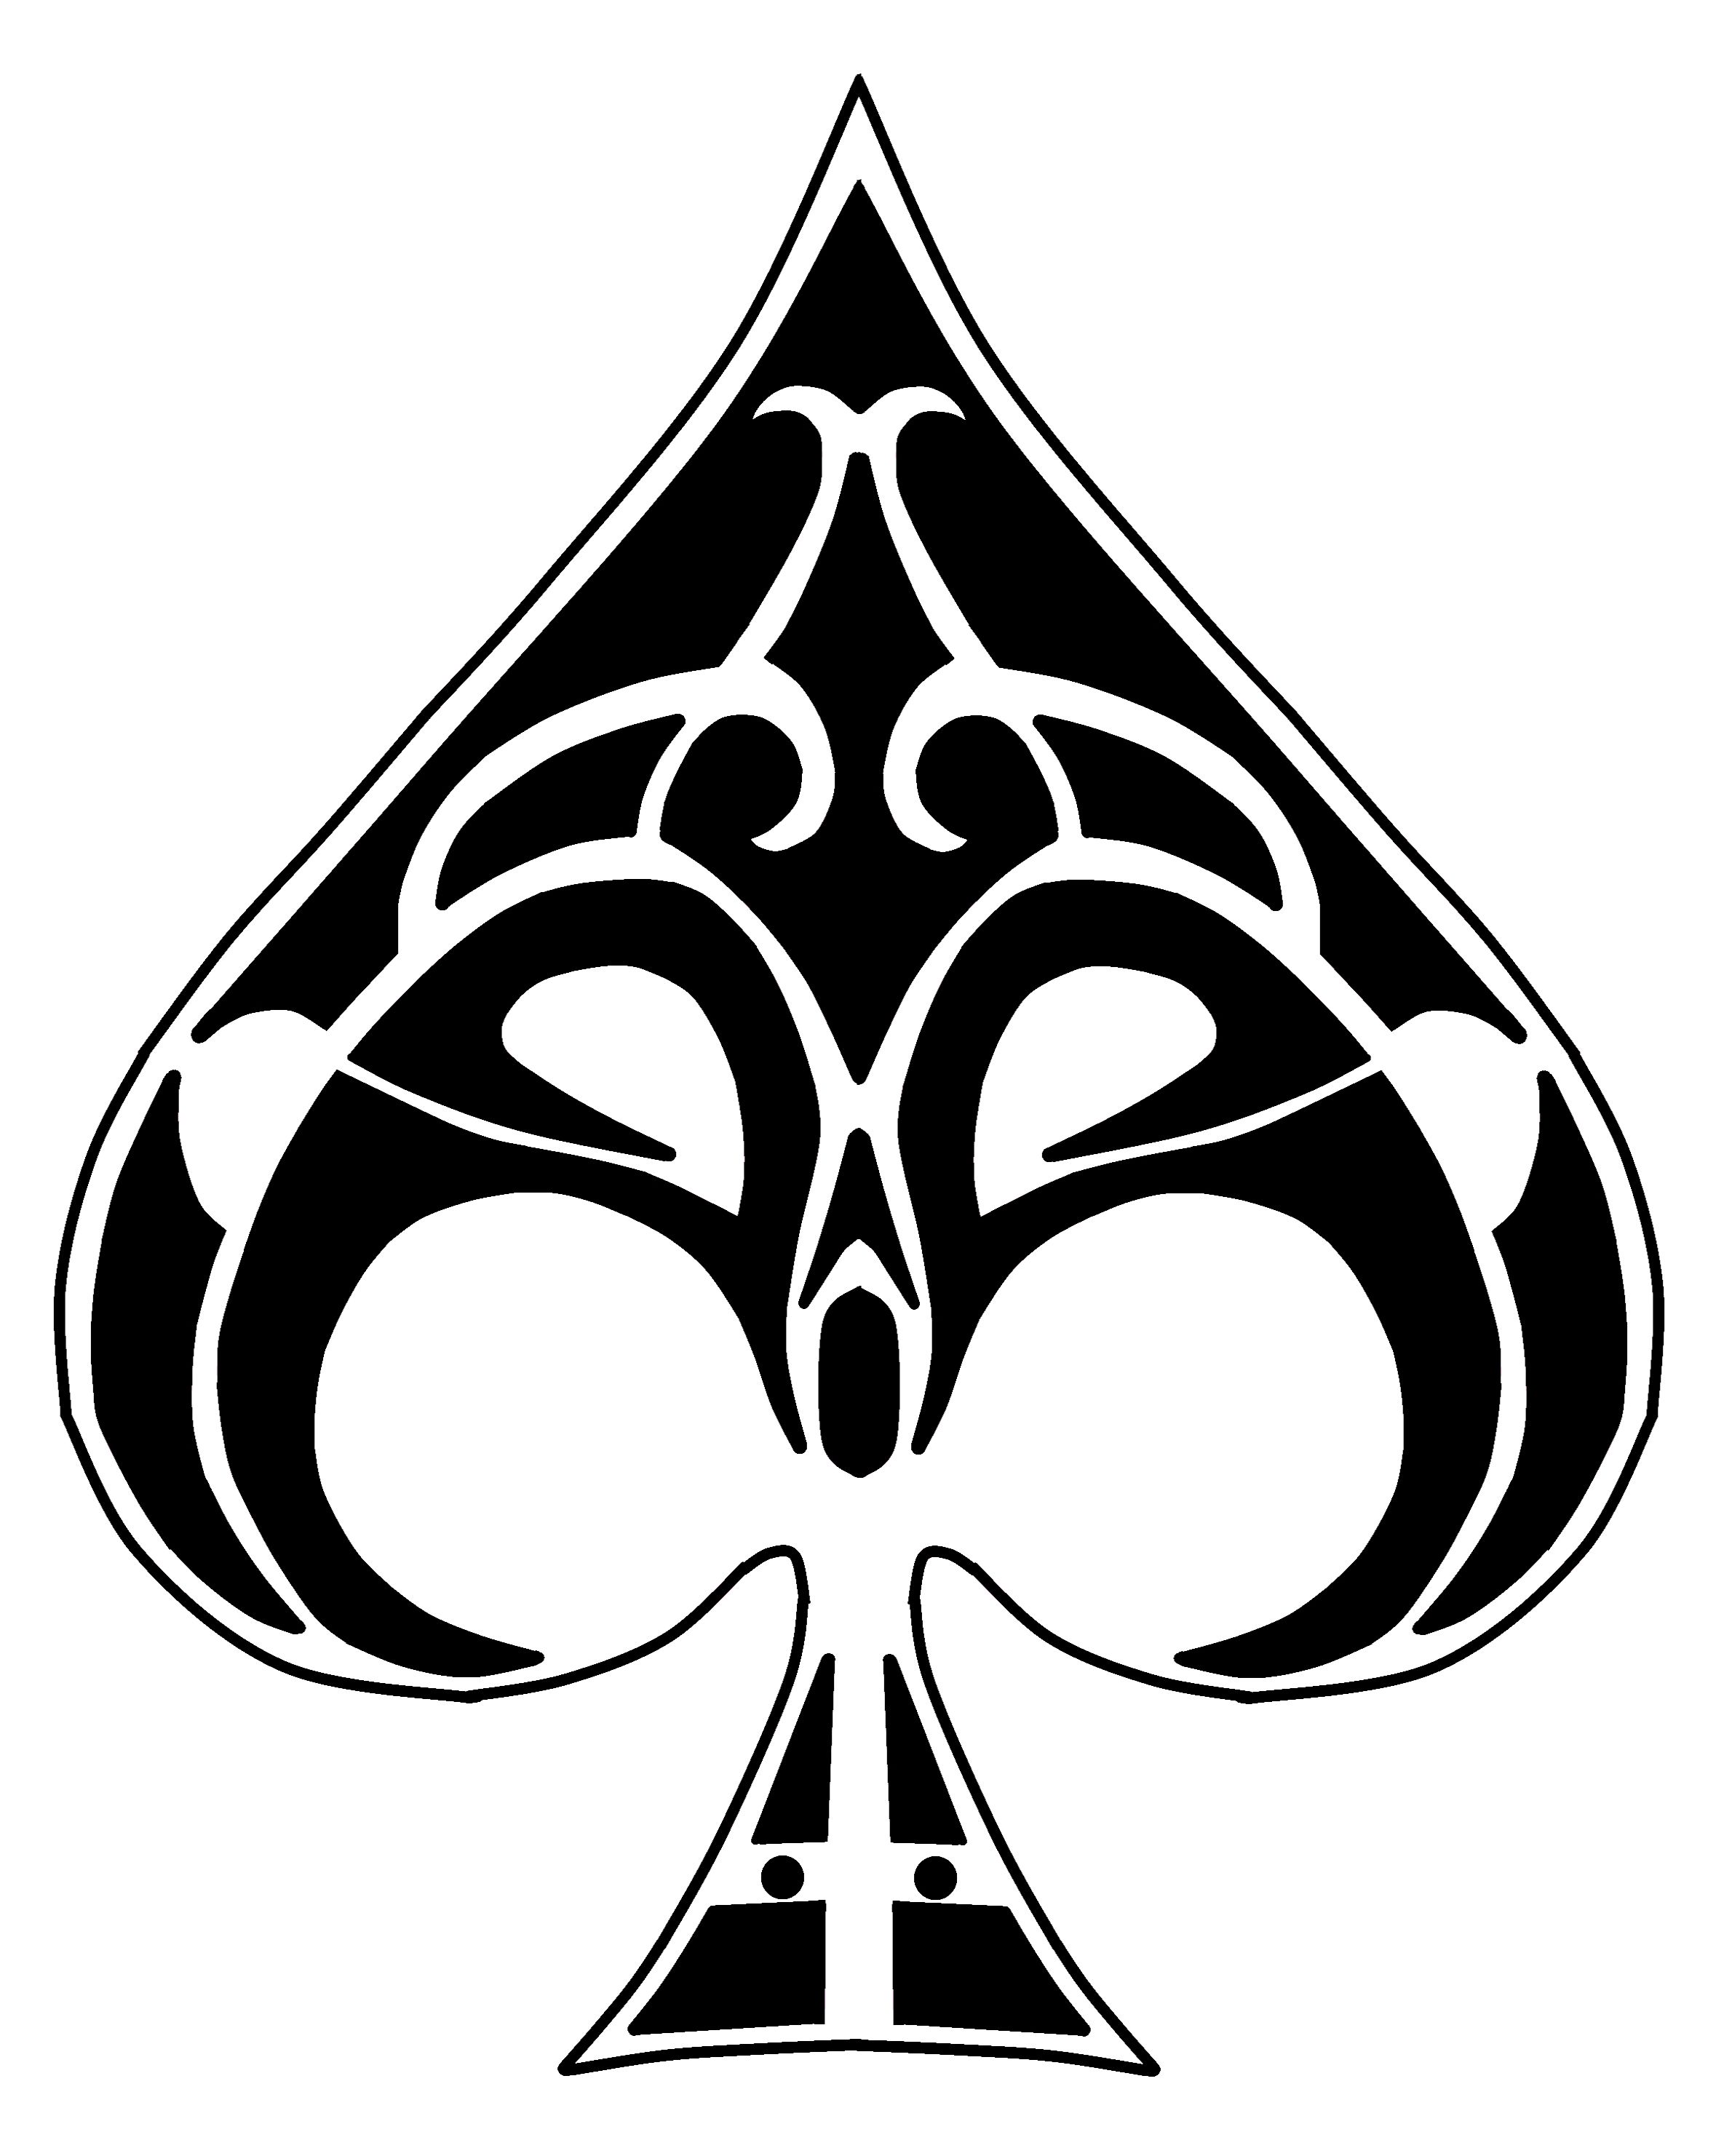 Pin by remi on ink pinterest tatoo drawing ideas and tattos ace of spades tattoo designs art designs drawing ideas stencils tatoos celtic pinup google images biocorpaavc Choice Image